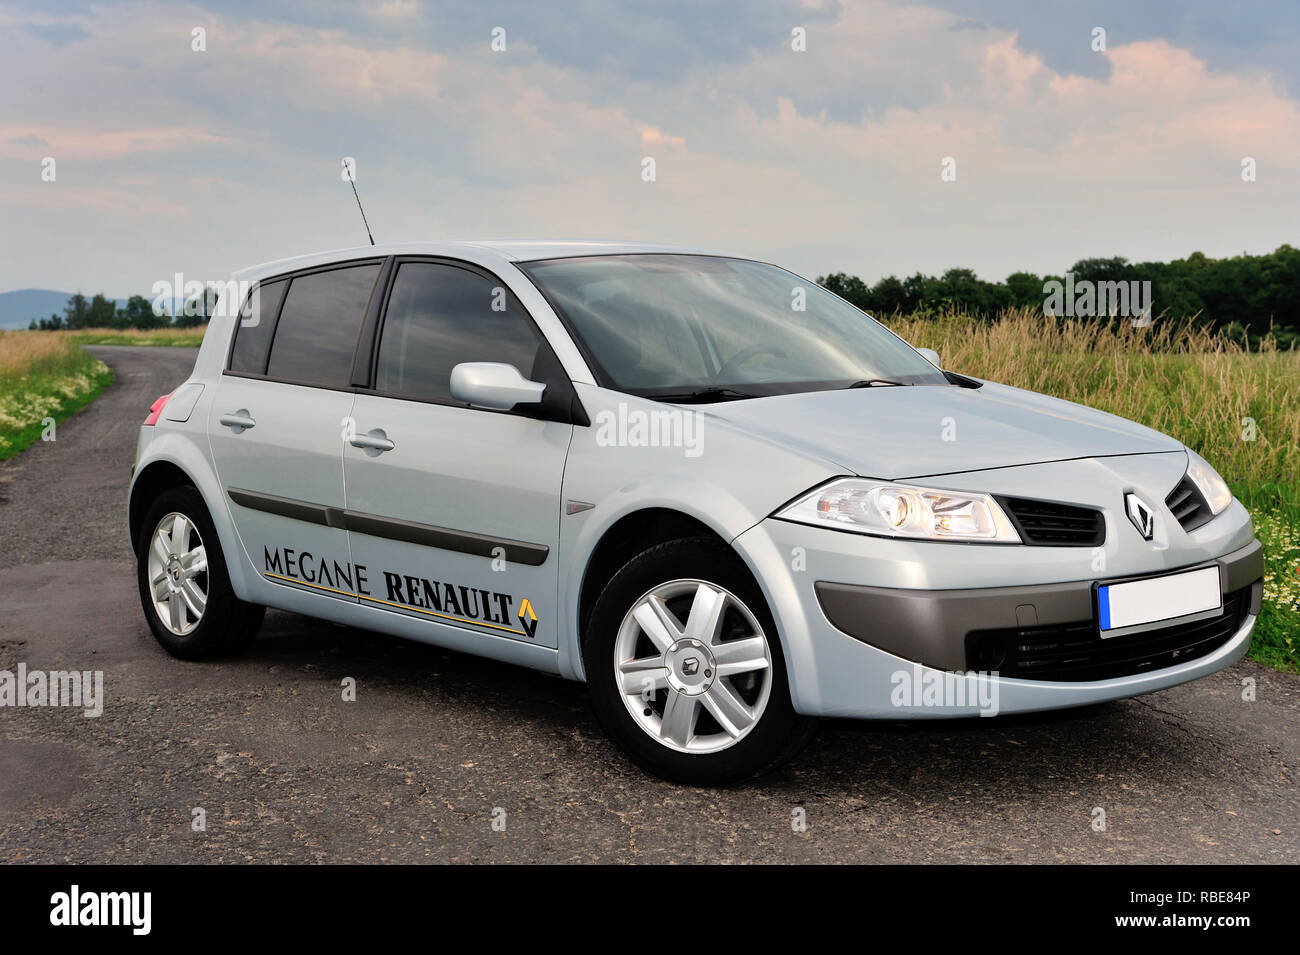 Renault Megane Car High Resolution Stock Photography And Images Alamy